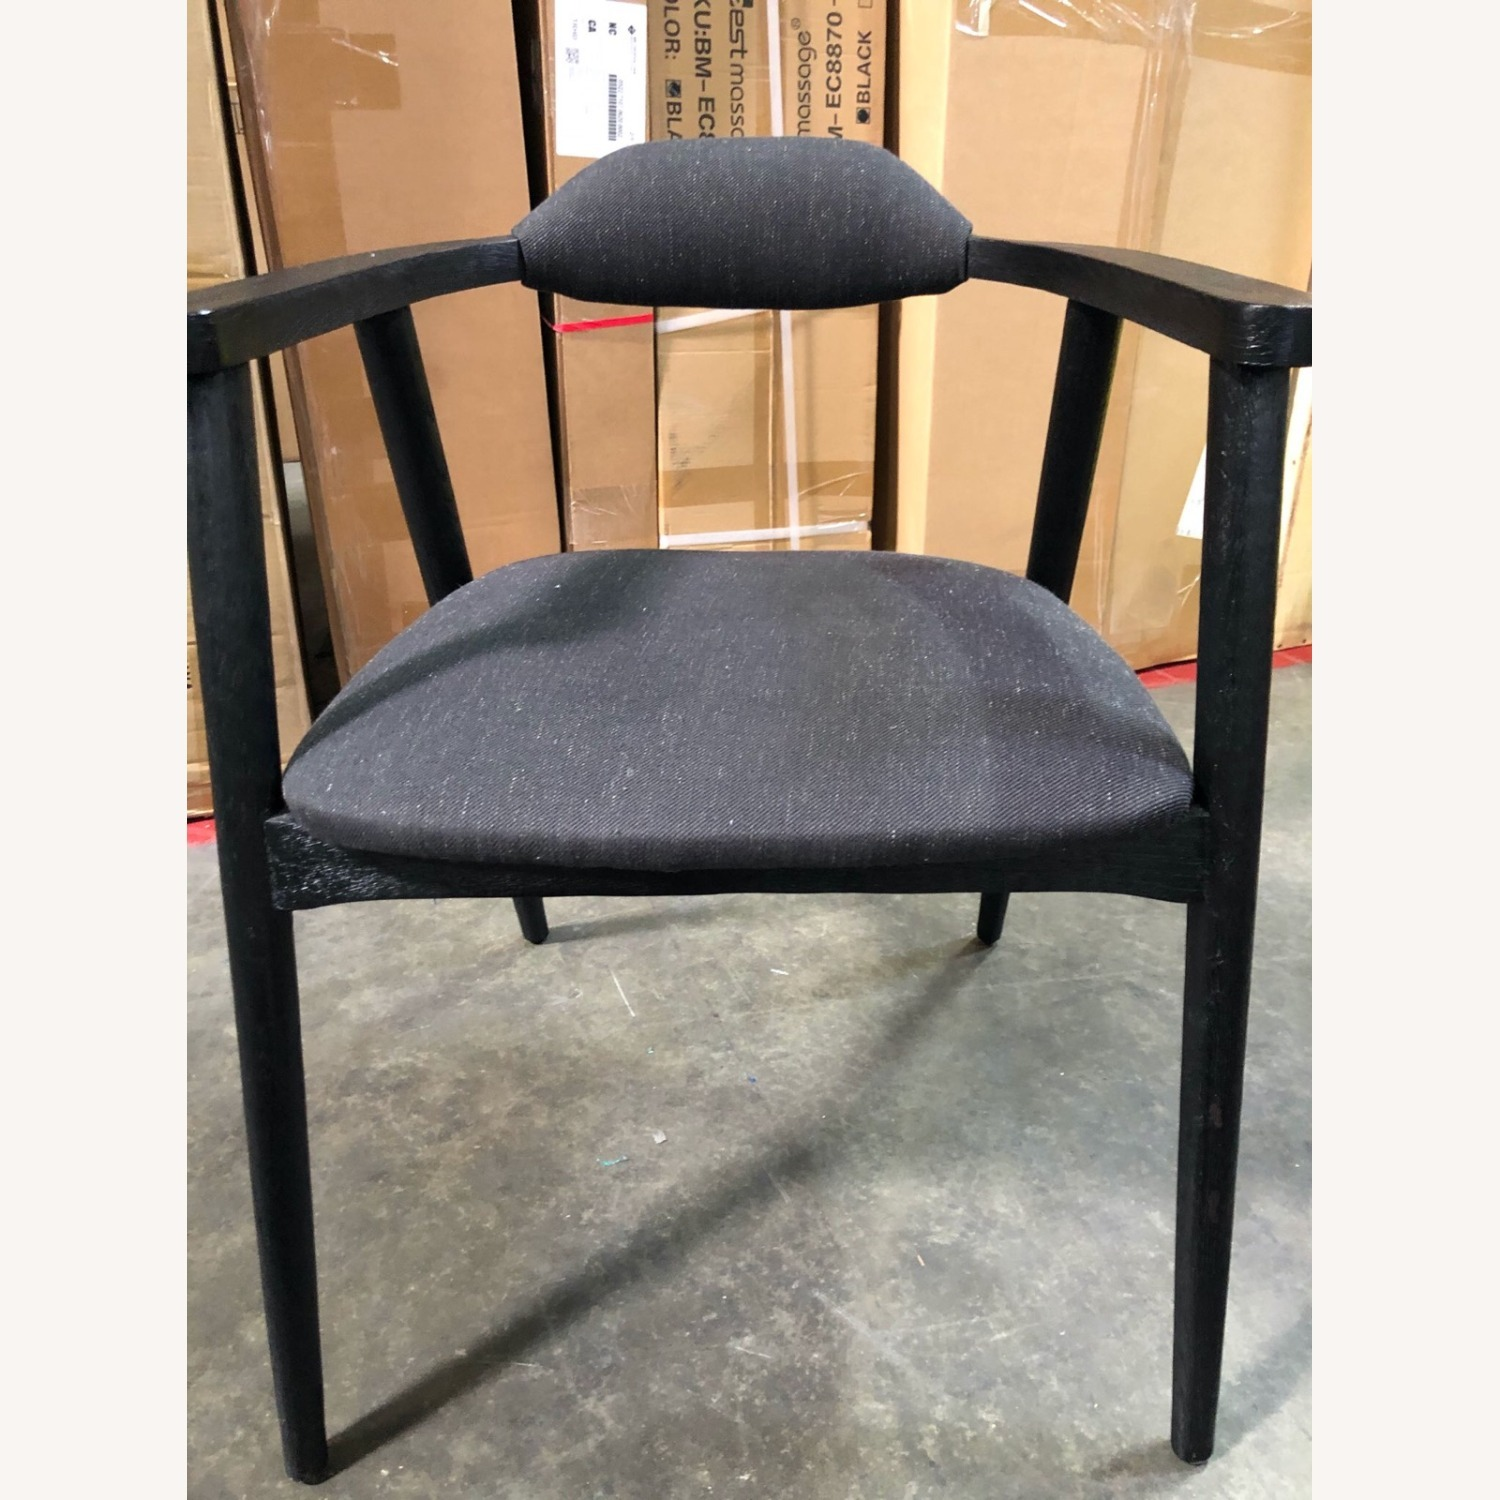 LH Imports Finch Chair - image-1